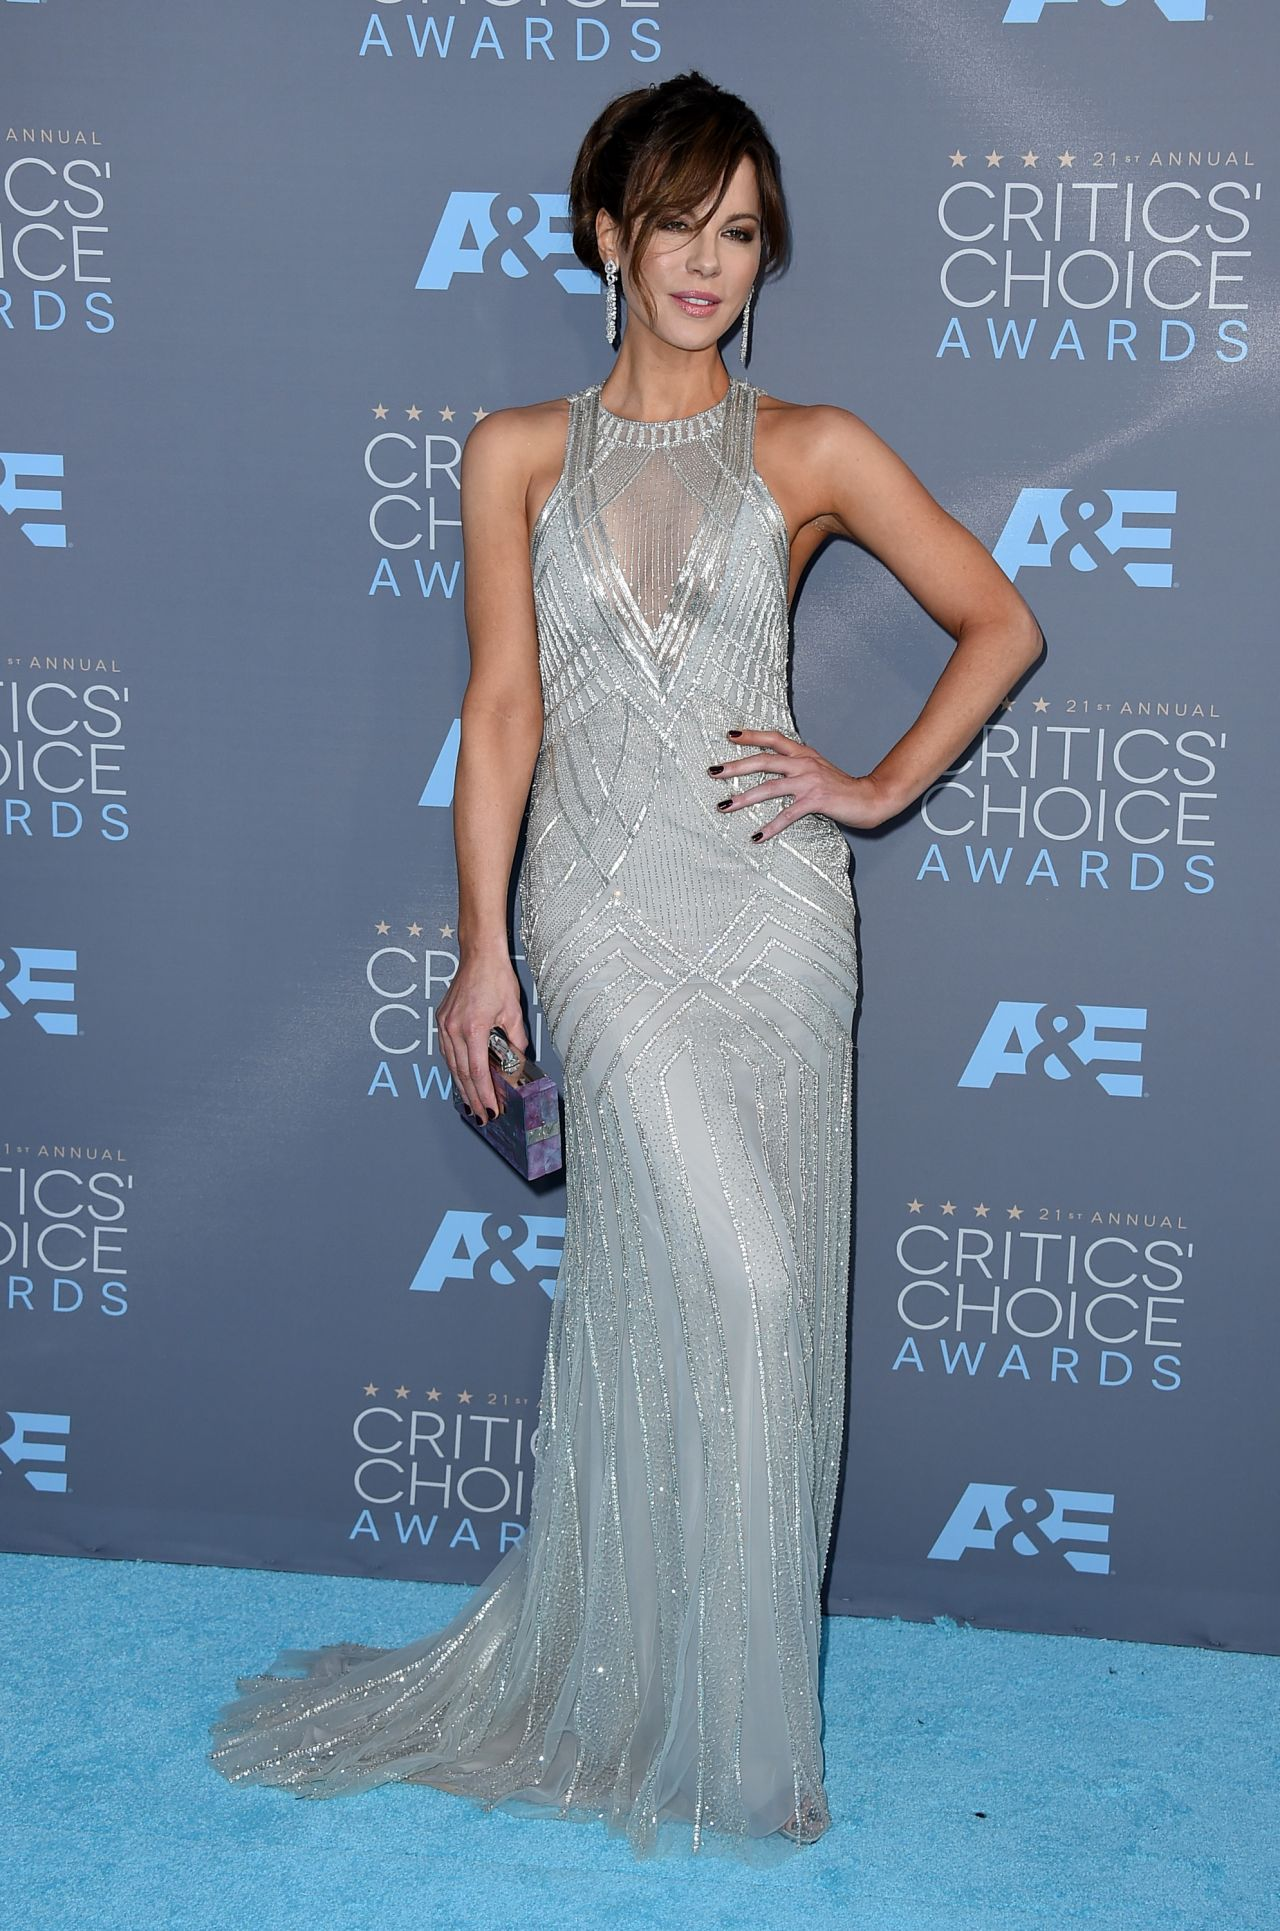 kate-beckinsale-2016-critics-choice-awards-in-santa-monica-1